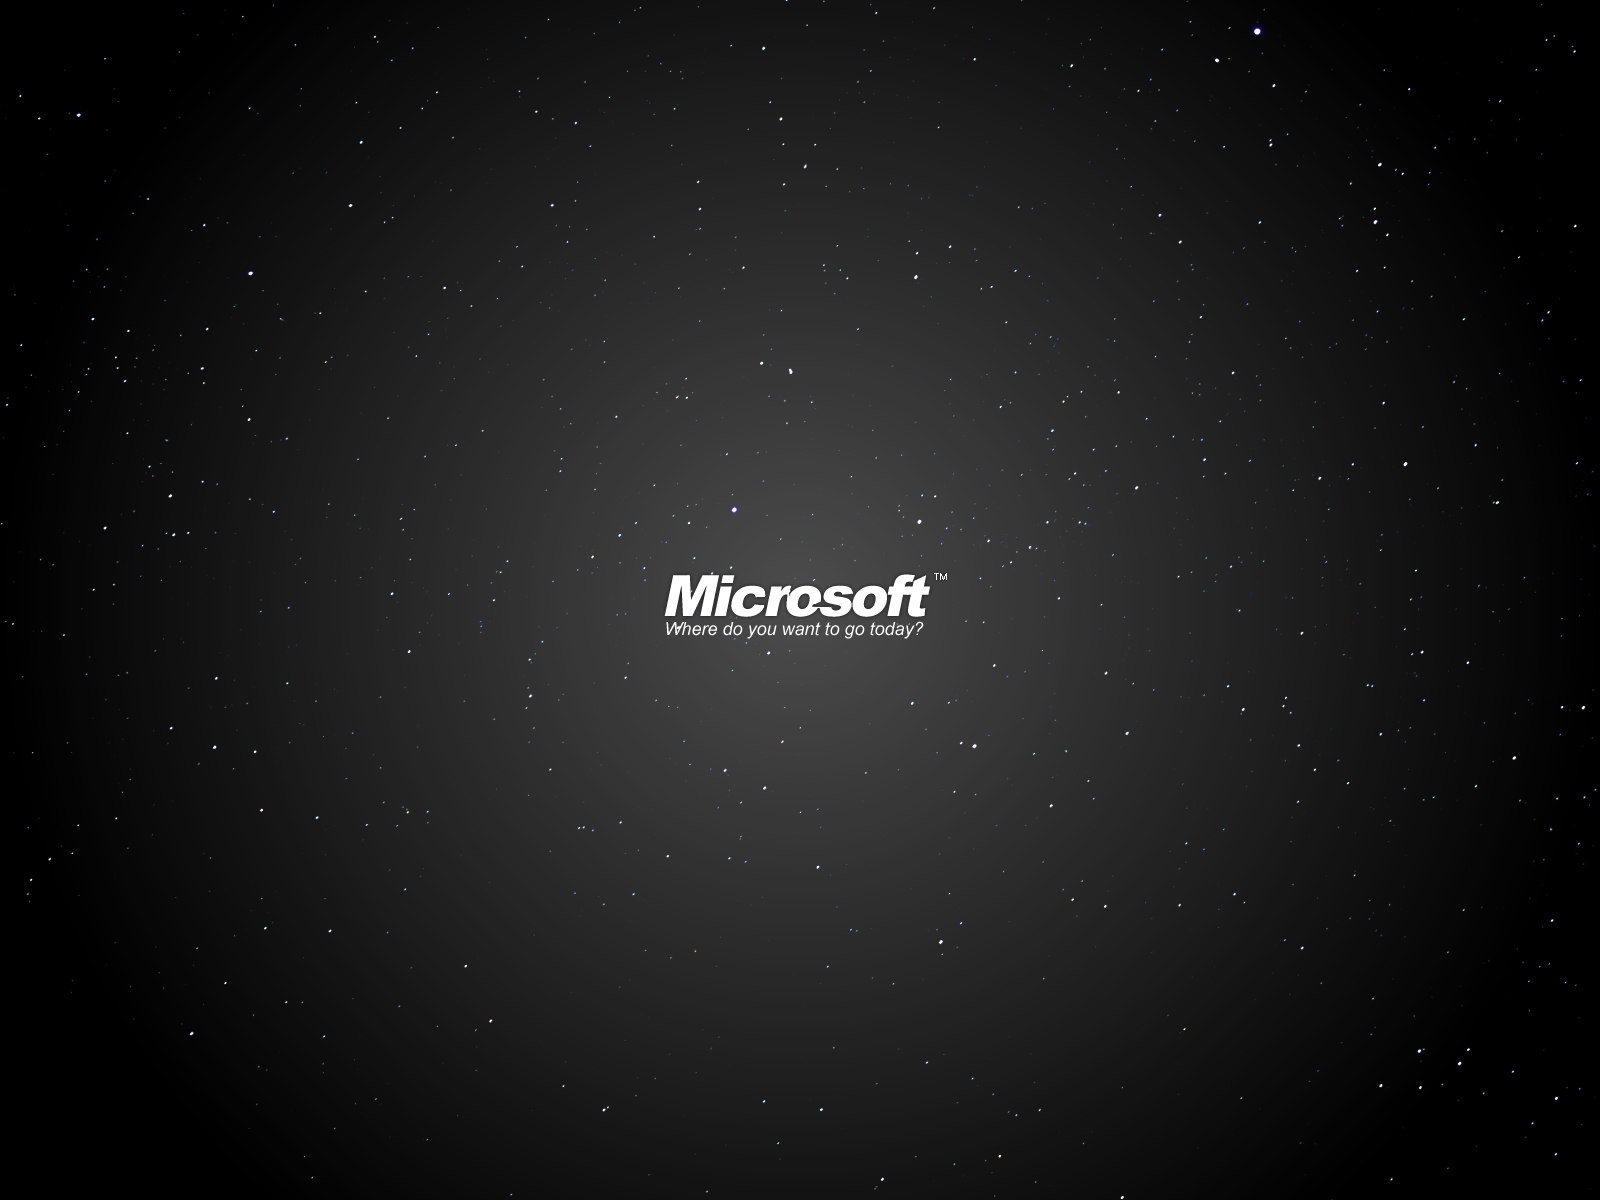 Microsoft Vintage Wallpaper